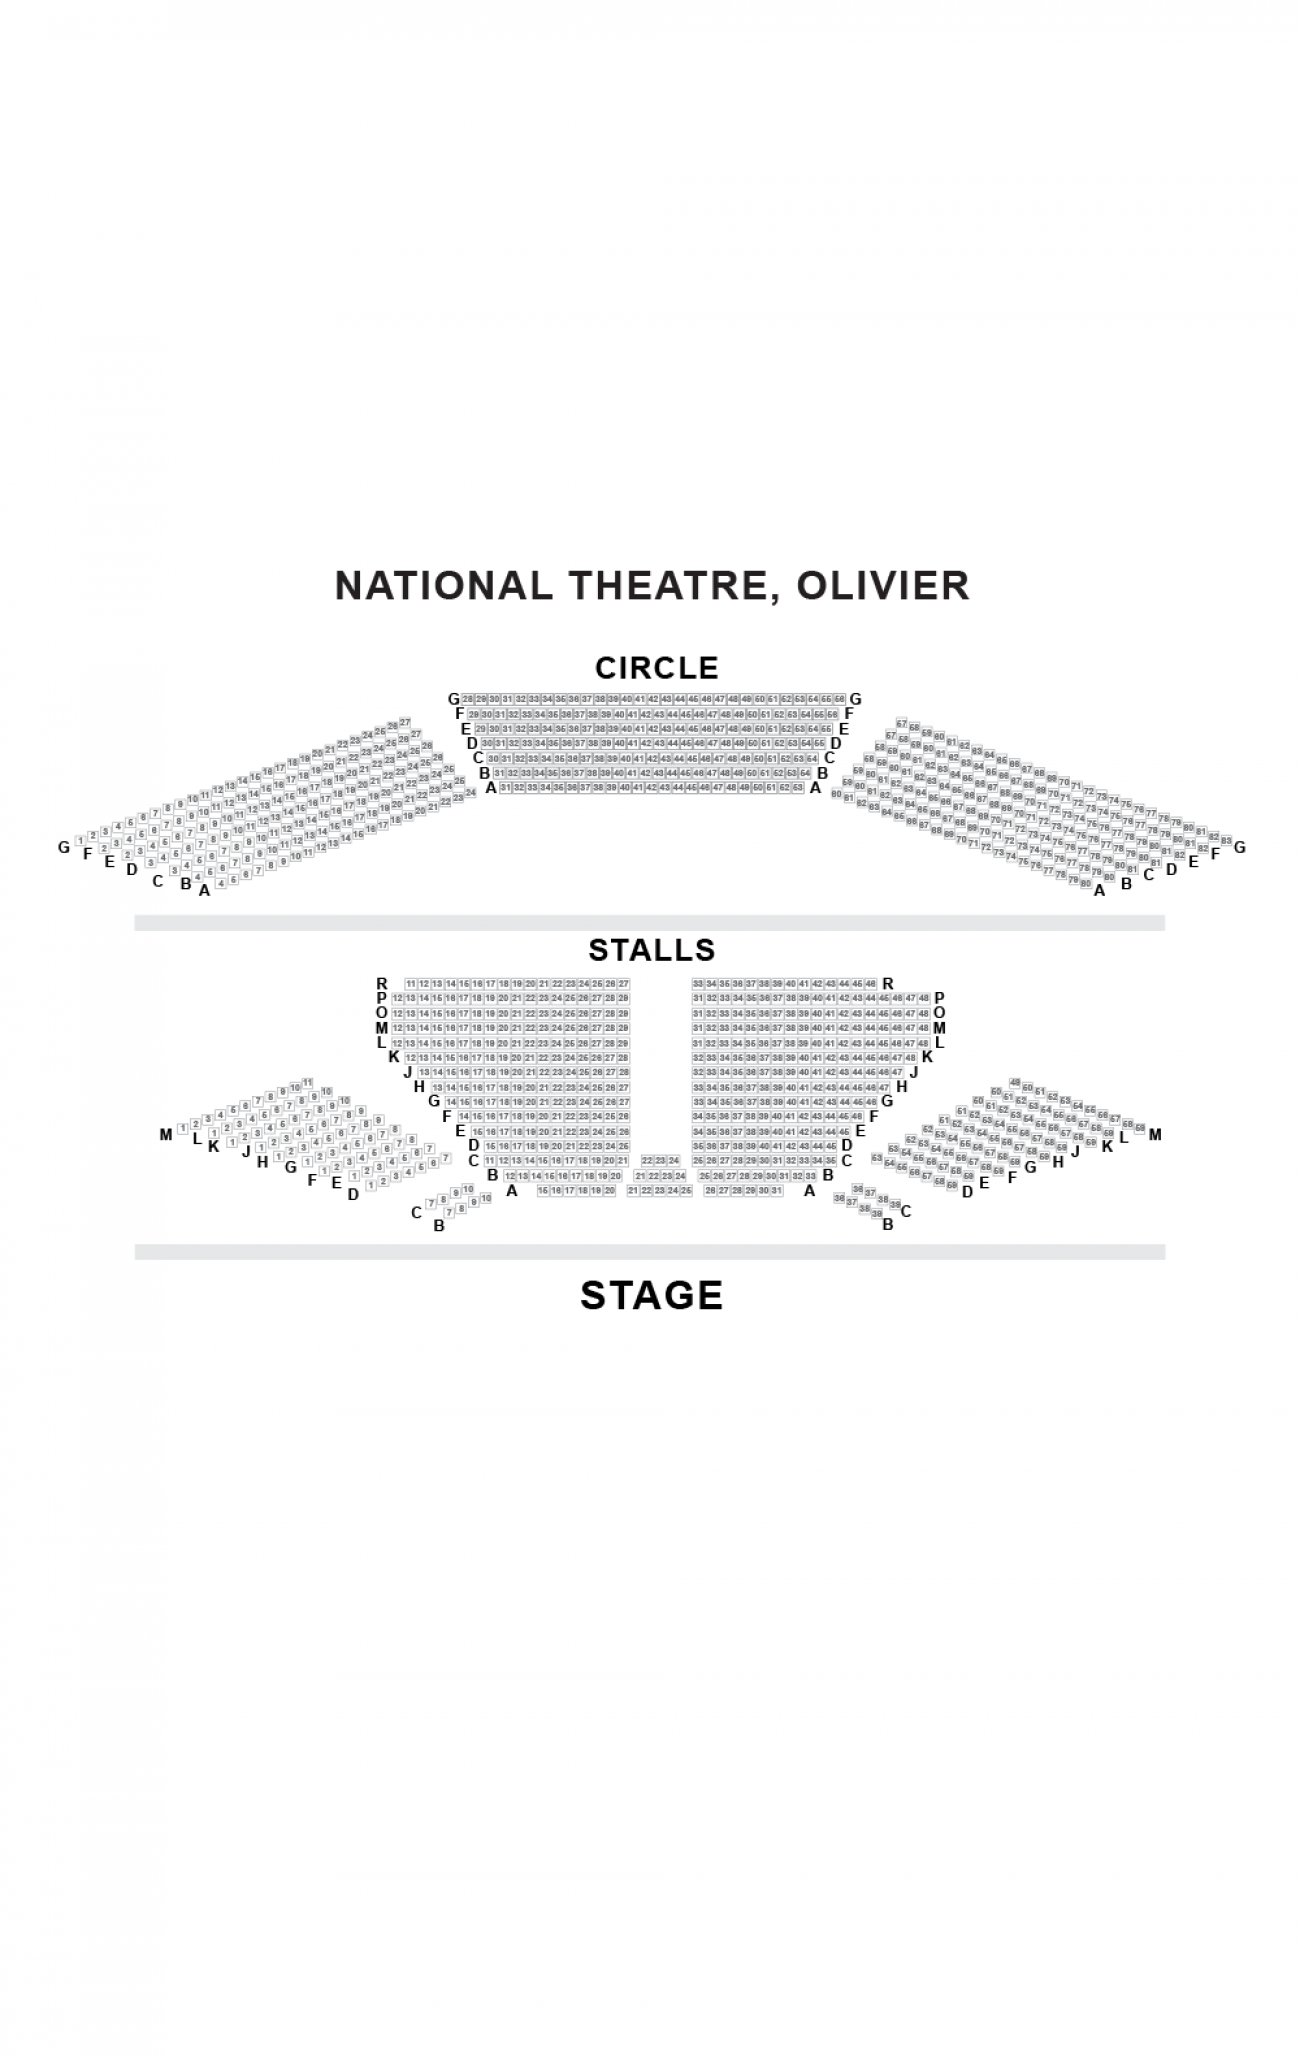 Olivier Theatre (National Theatre) Seating plan